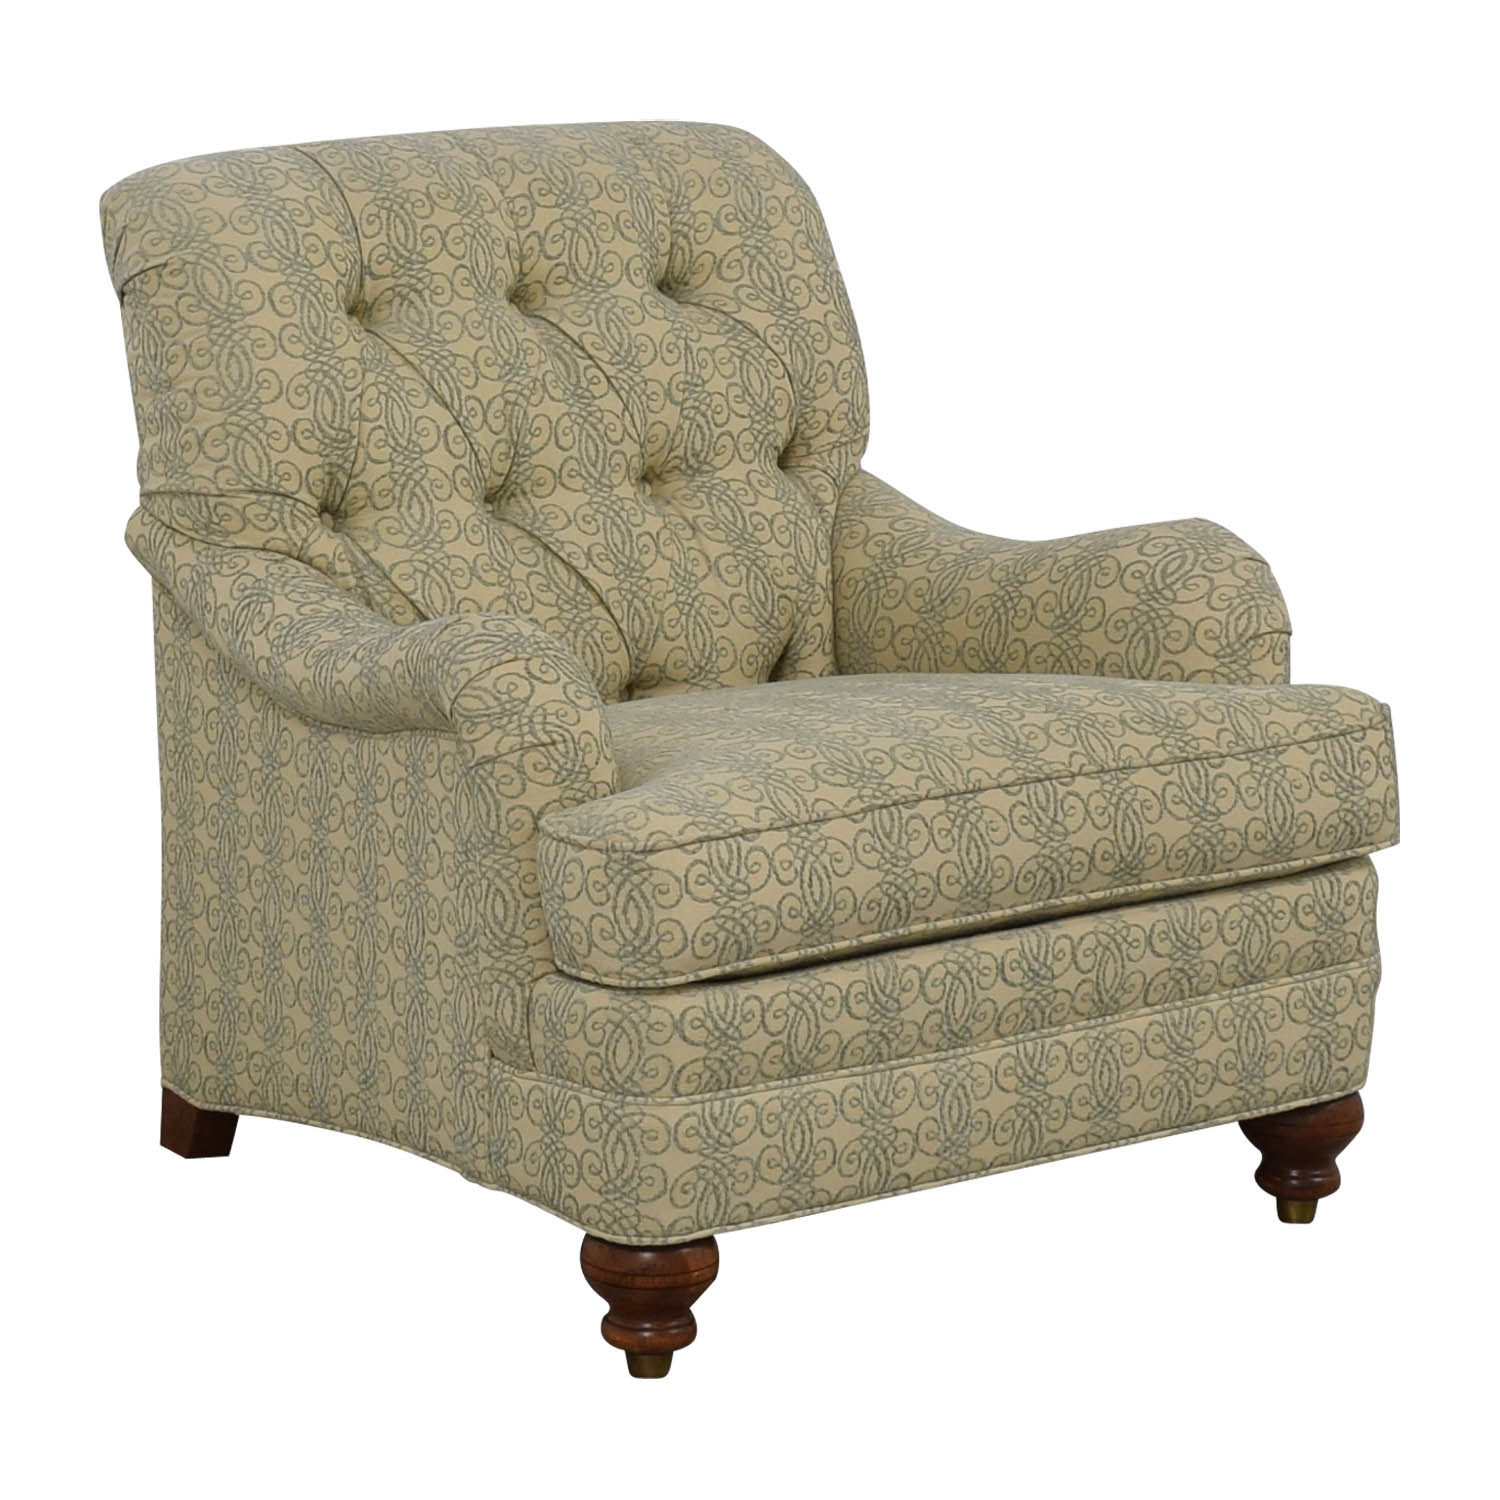 Ethan Allen Mercer Tufted Accent Chair / Chairs